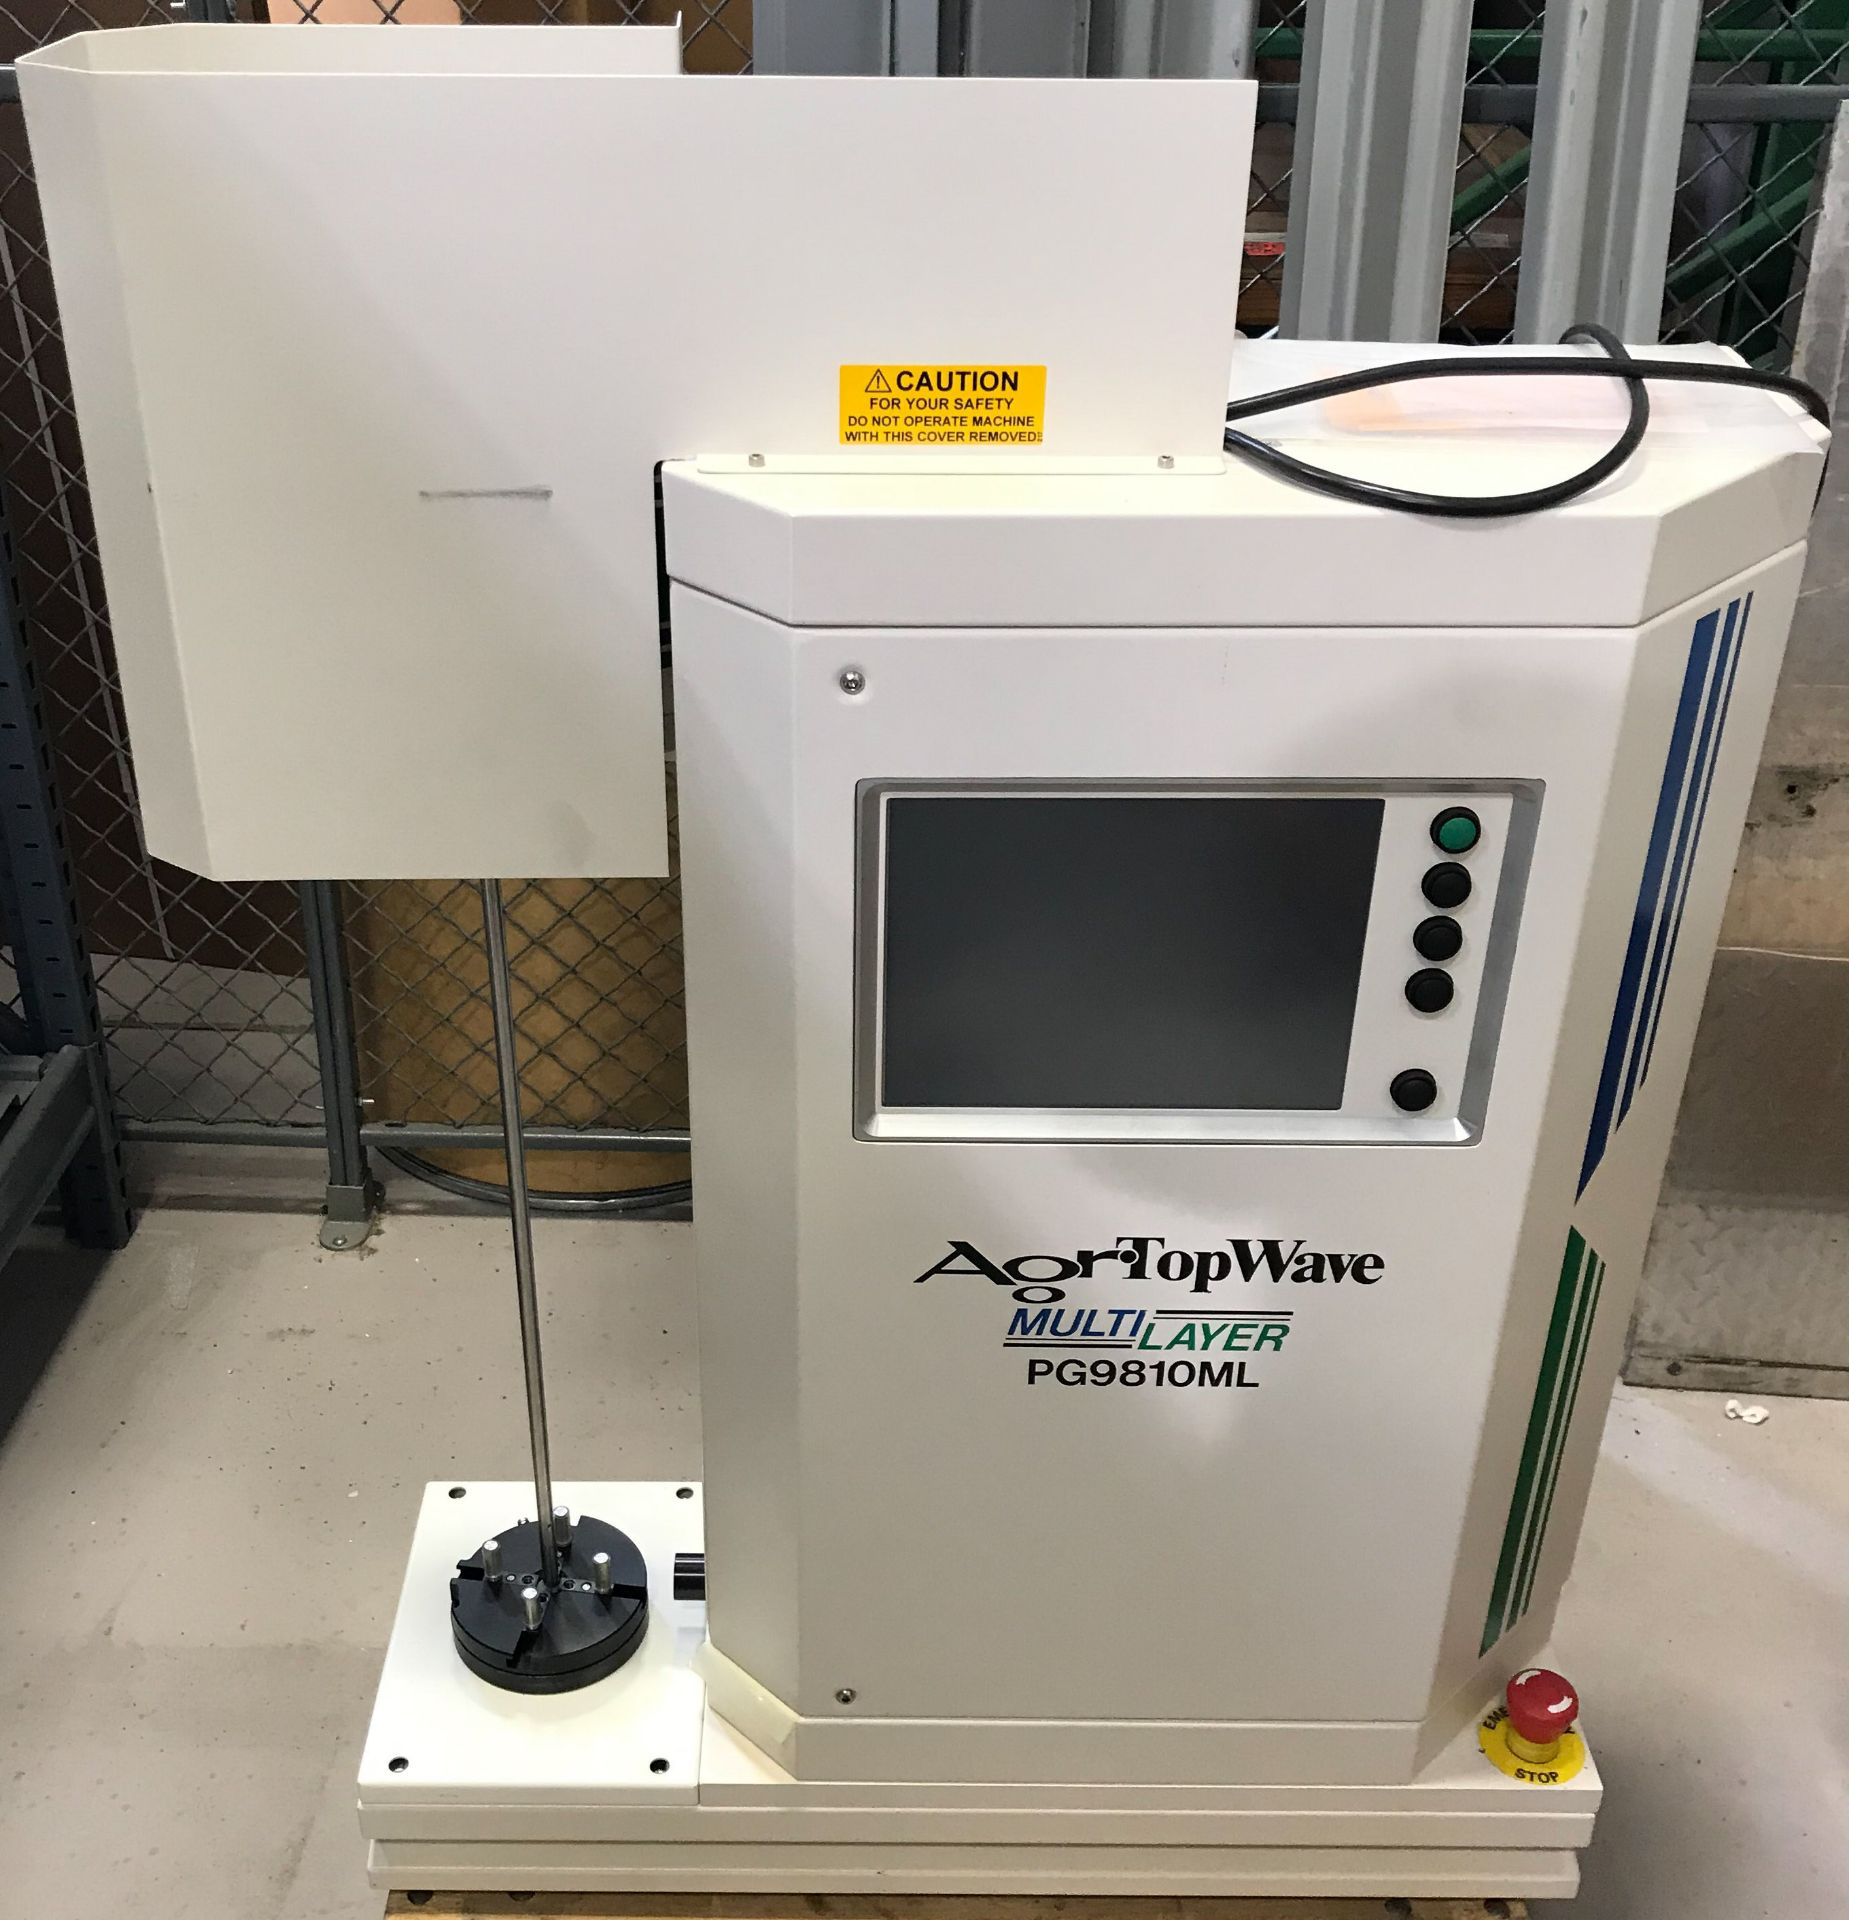 AGR TOPWAVE (2008) PG9810ML MULTI-LAYER DIGITAL PROFILER WITH TOUCH SCREEN CONTROL, S/N: 207 [